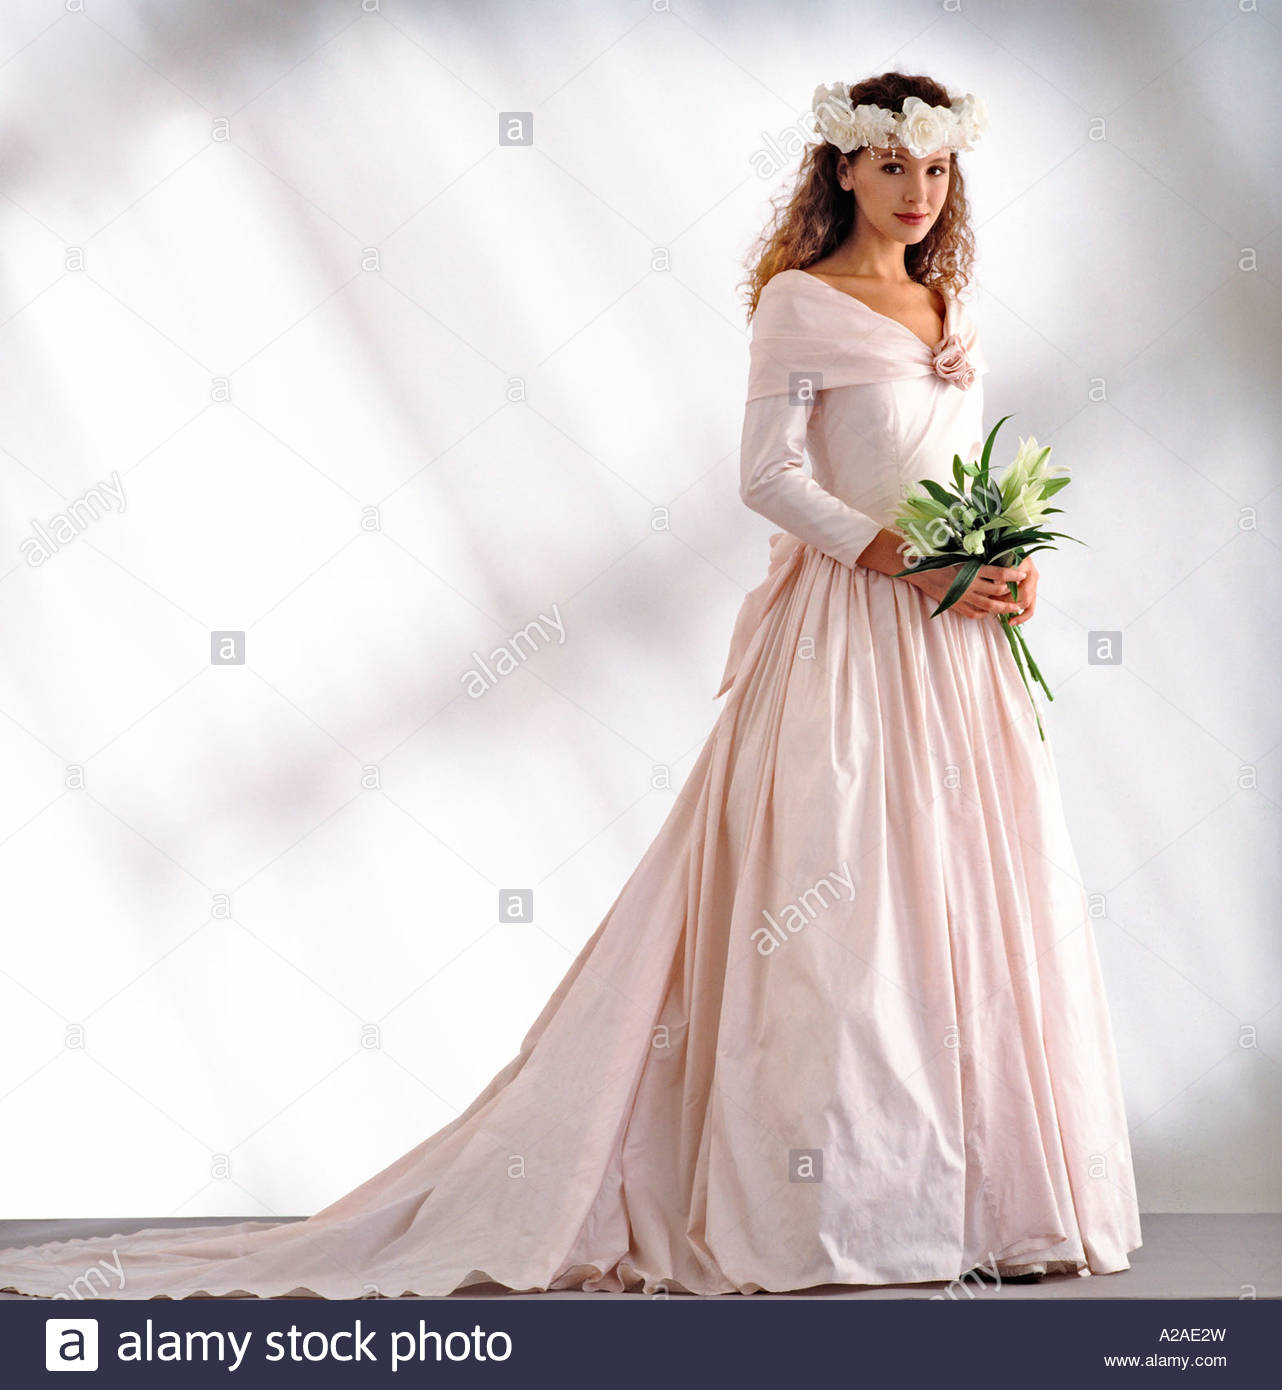 Pretty young bride stands ready in a pale pink wedding dress pretty young bride stands ready in a pale pink wedding dress holding a bouquet of flowers white and grey studio background junglespirit Images